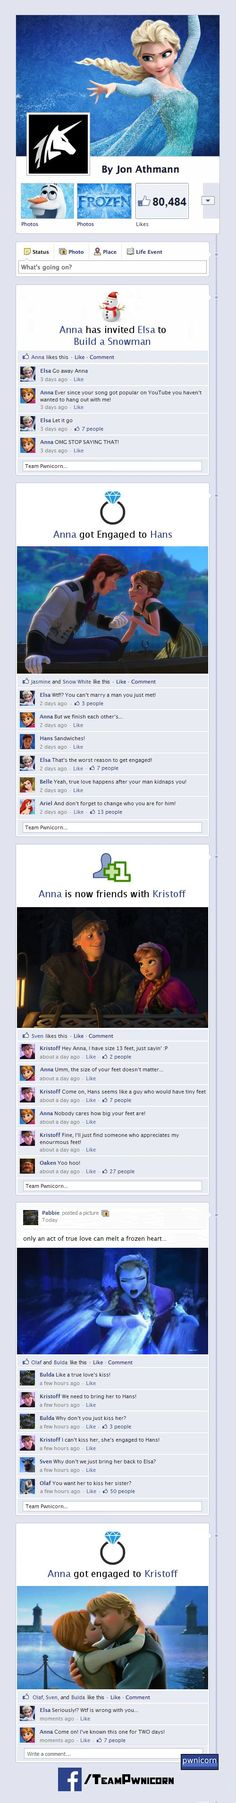 Frozen on Facebook, DYING LAUGHING! But look away if you dont want to spoil the movie ;)